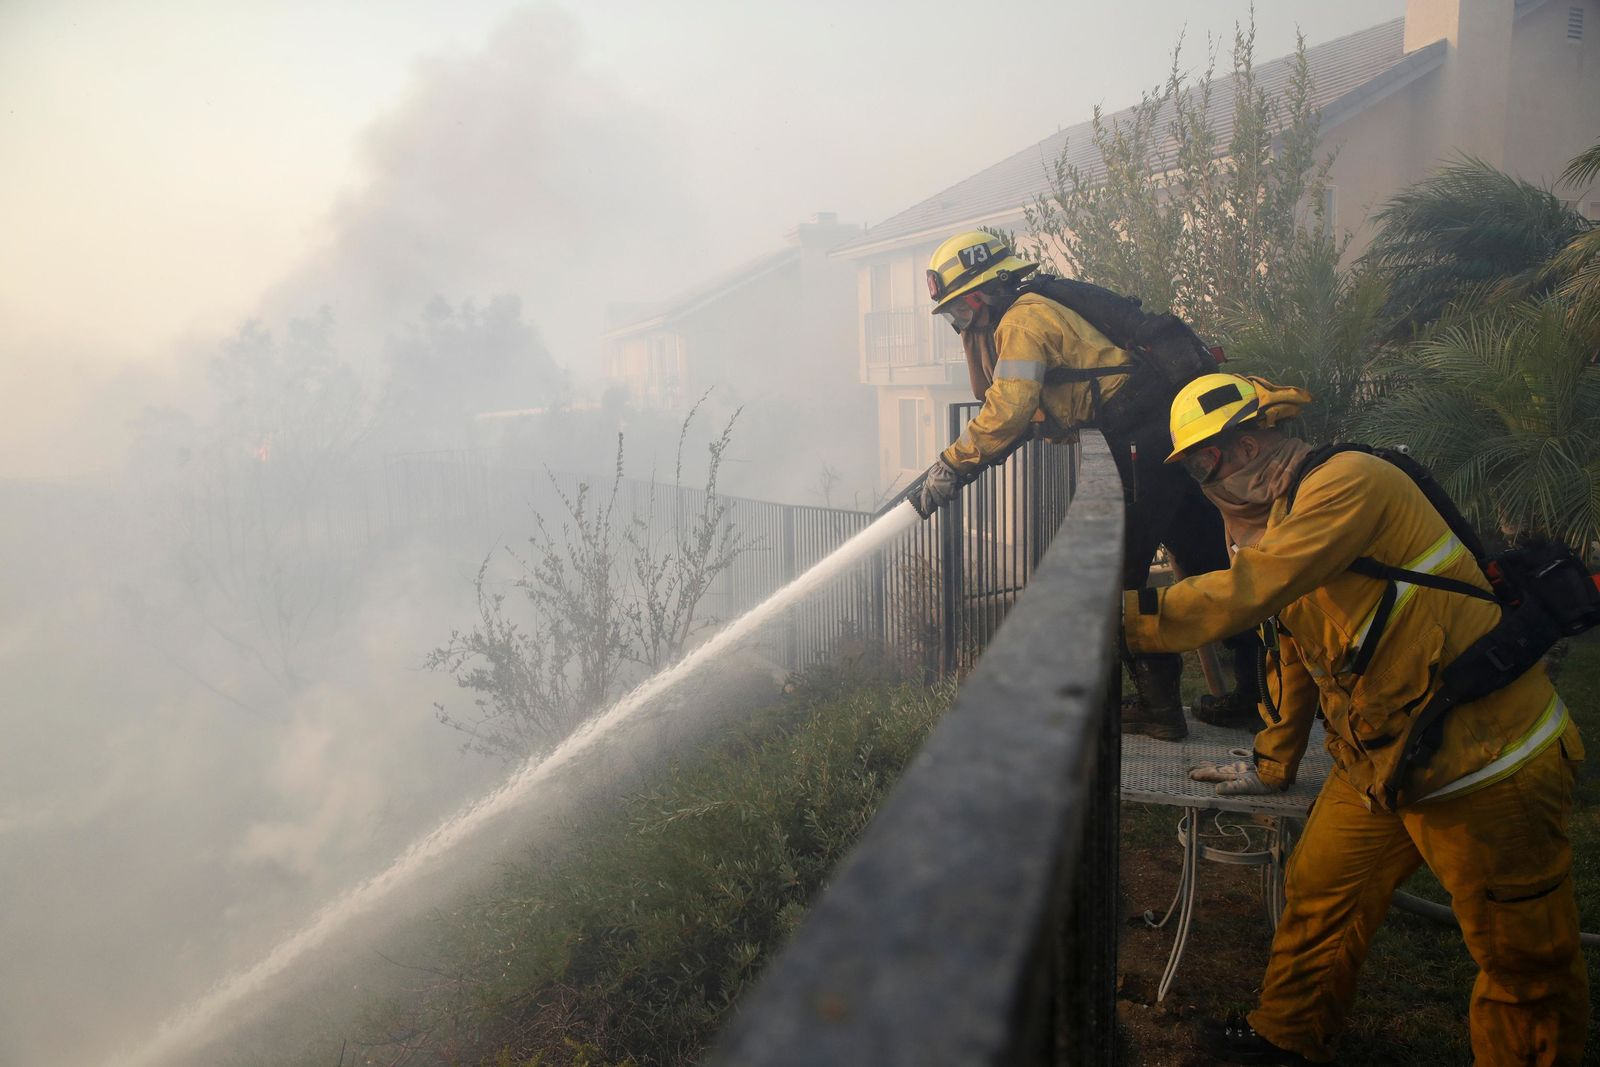 Firefighters make a stand on an advancing wildfire from the backyard of a home Friday, Oct. 11, 2019, in Porter Ranch, Calif. (AP Photo/Marcio Jose Sanchez)